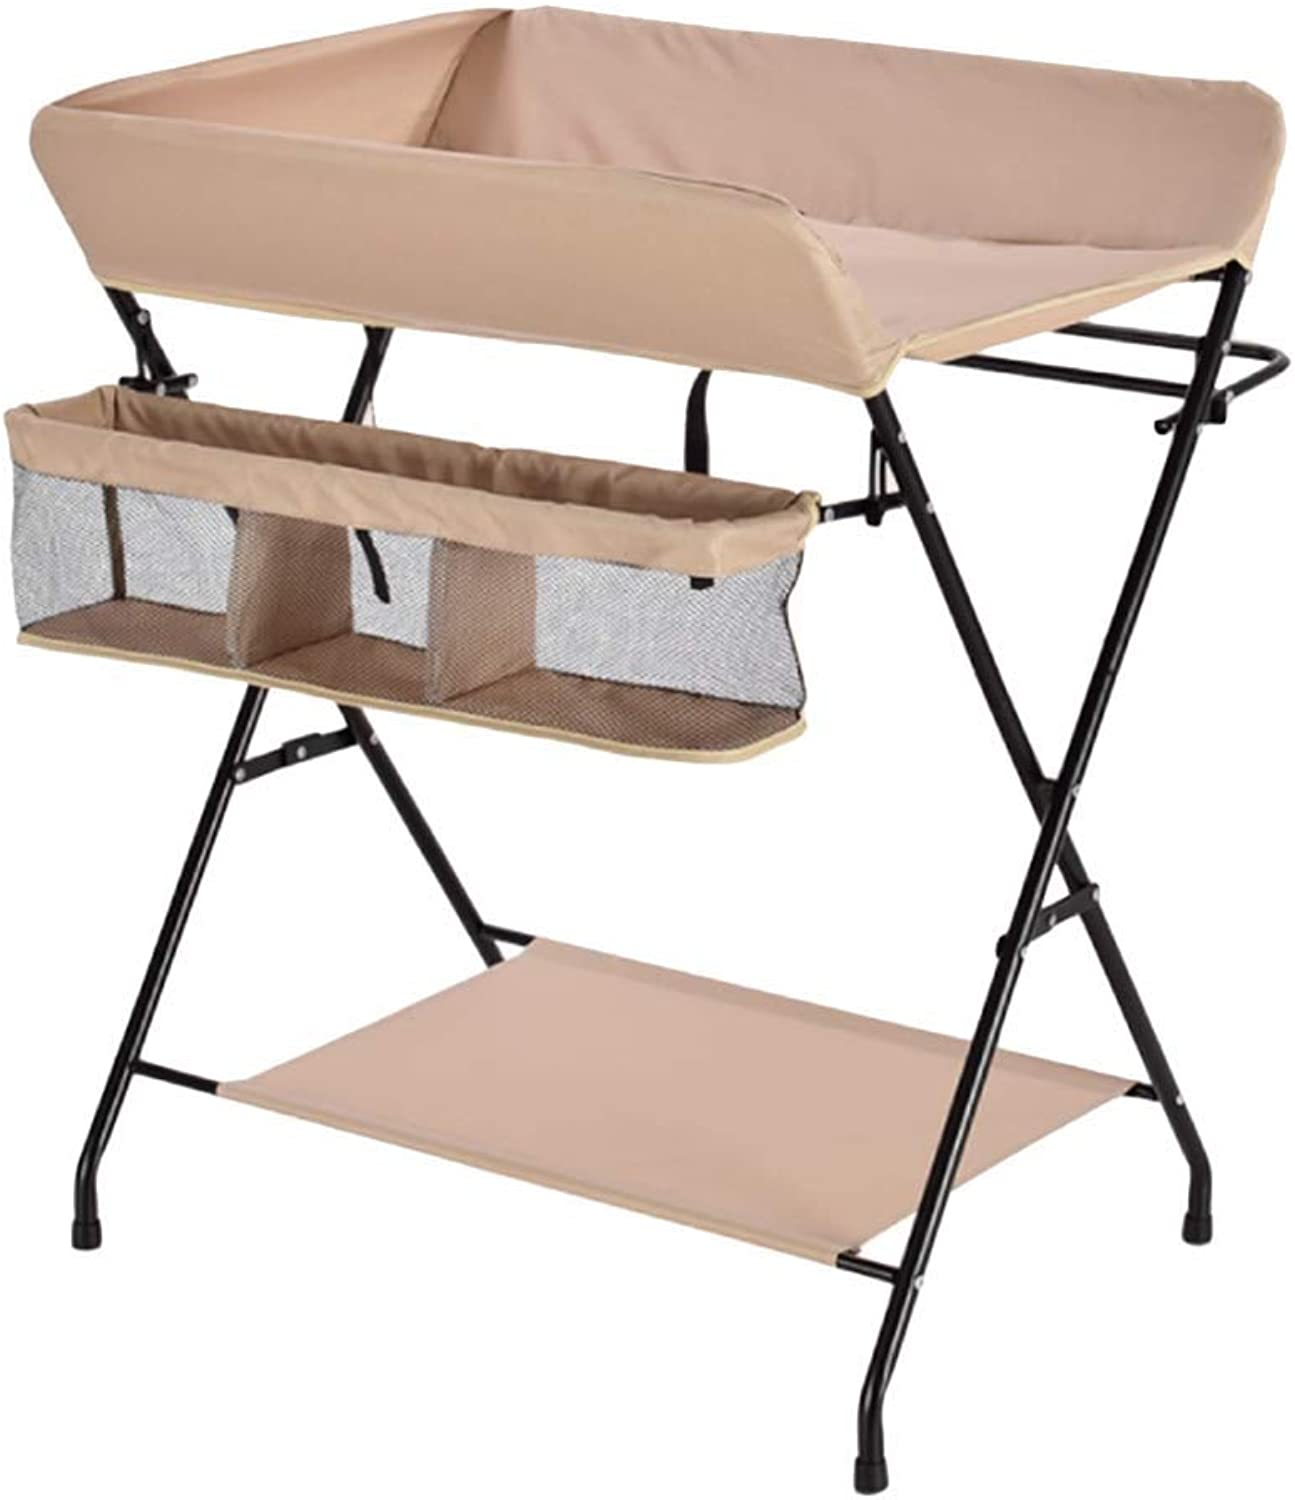 Folding Baby Changing Table Change Table Storage Space Baby Portable Diaper Station Kindergarten Dressing Table Cross Leg (color   orange)